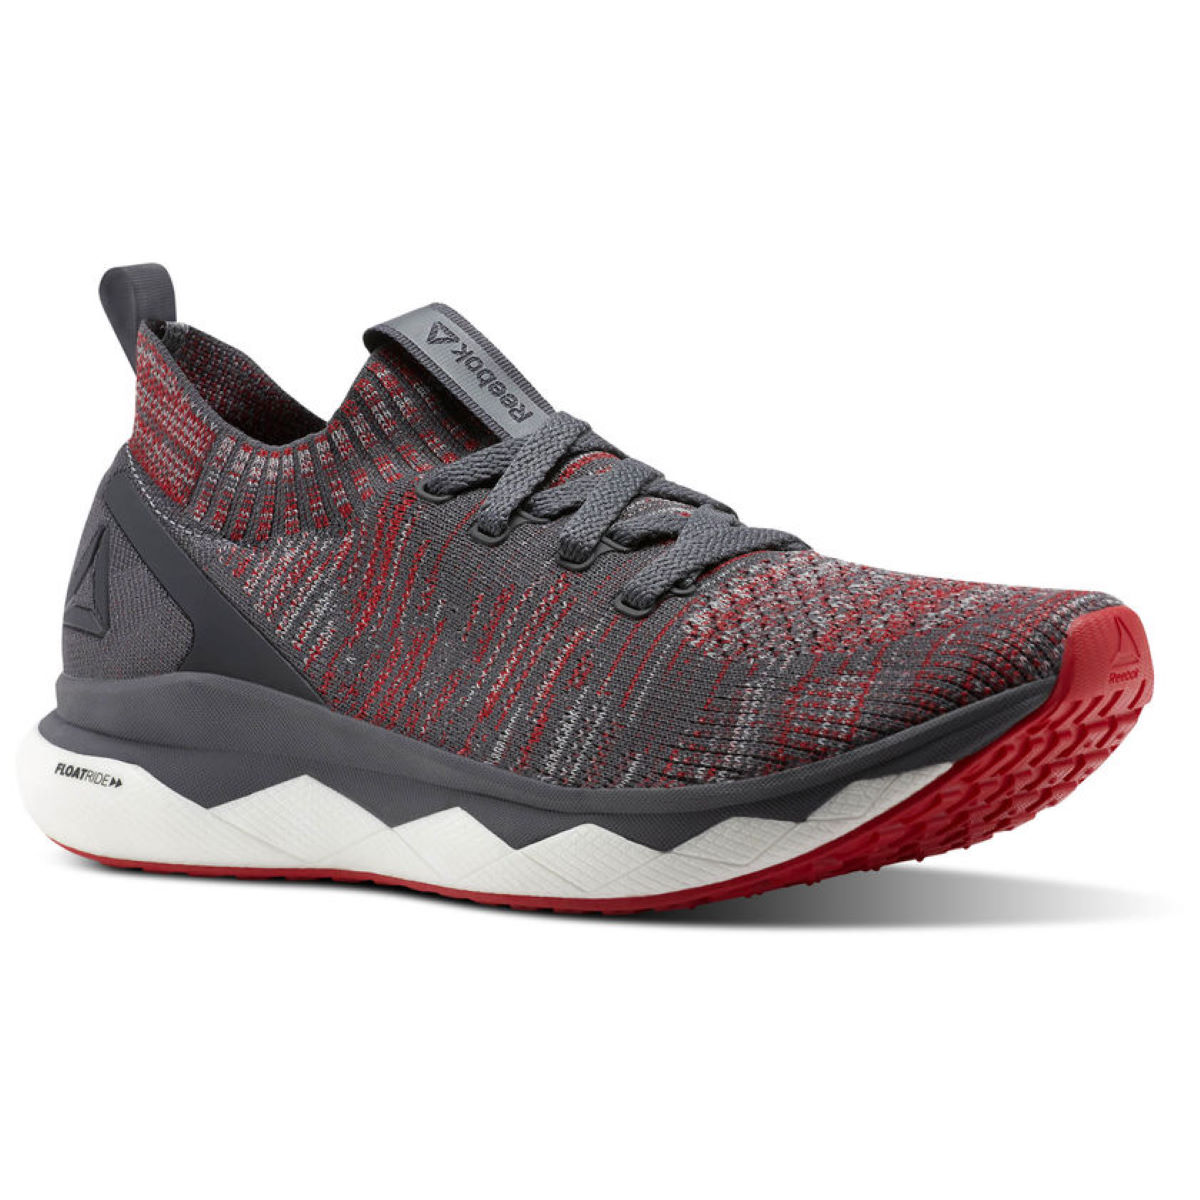 Reebok Floatride RS Shoes - UK 9 STARK GREY/ASH GREY/